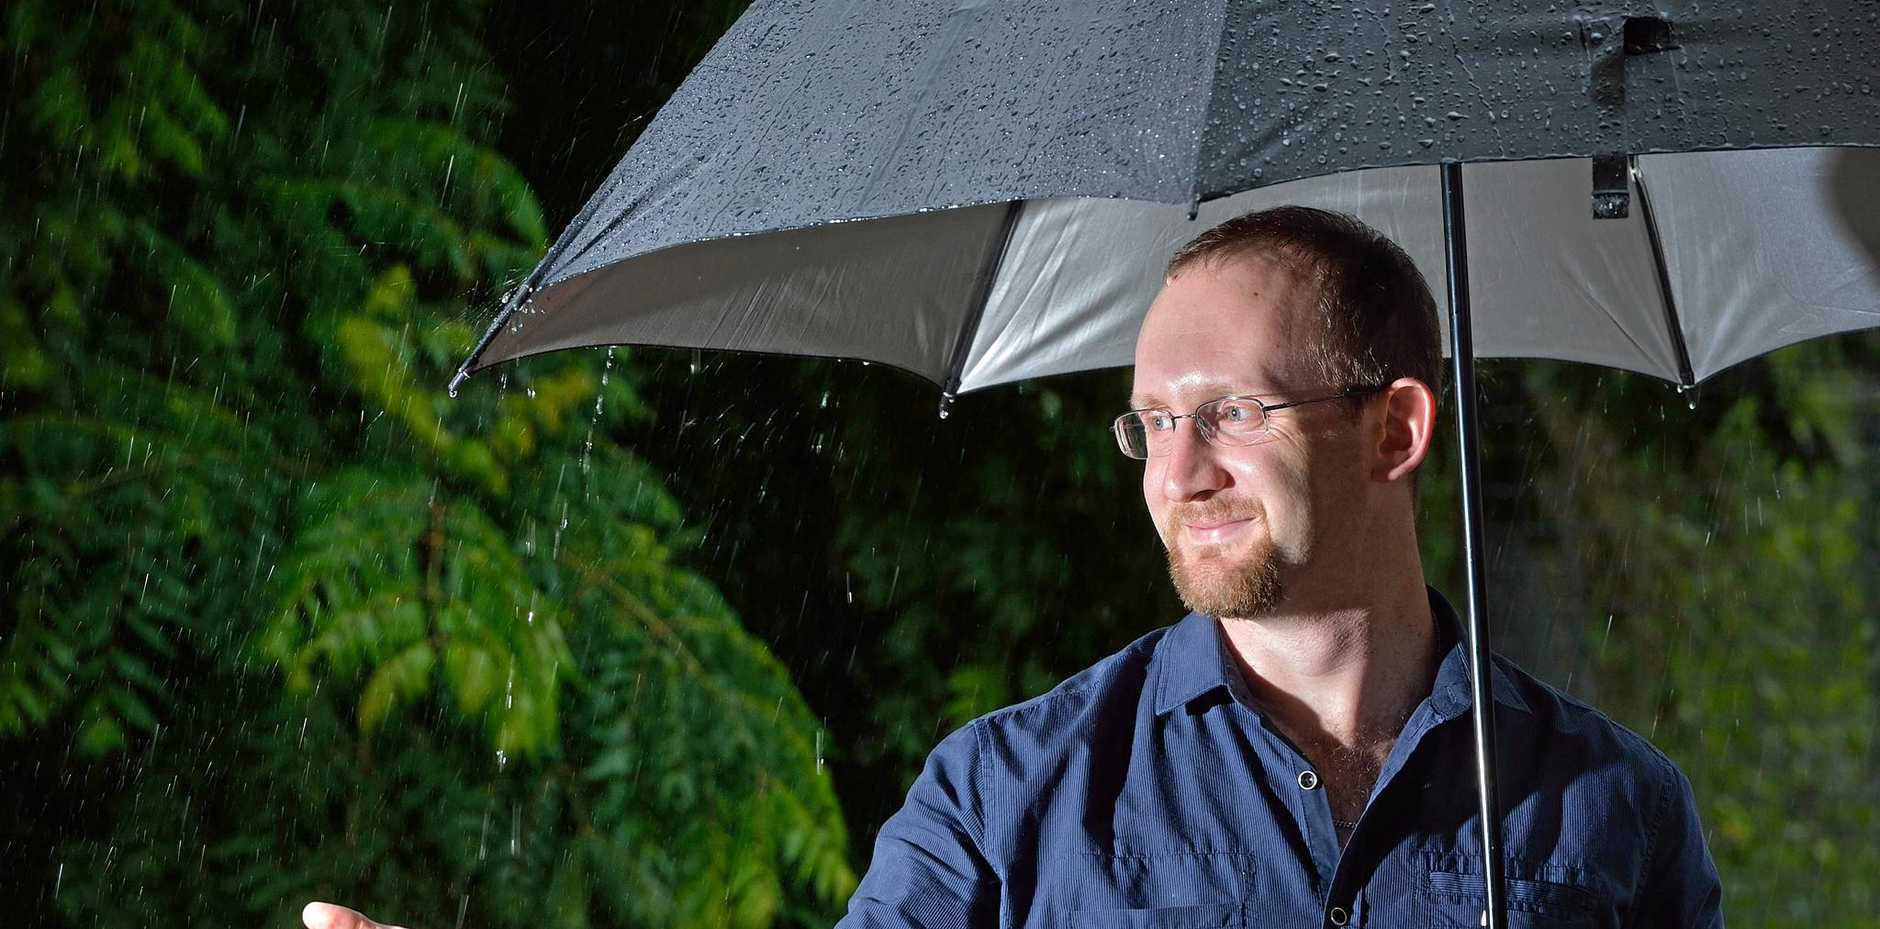 SMILIN' IN THE RAIN: Scott Kovacevic enjoys the rain in Gympie yesterday, with more expected as a low pressure system develops in the Coral Sea.